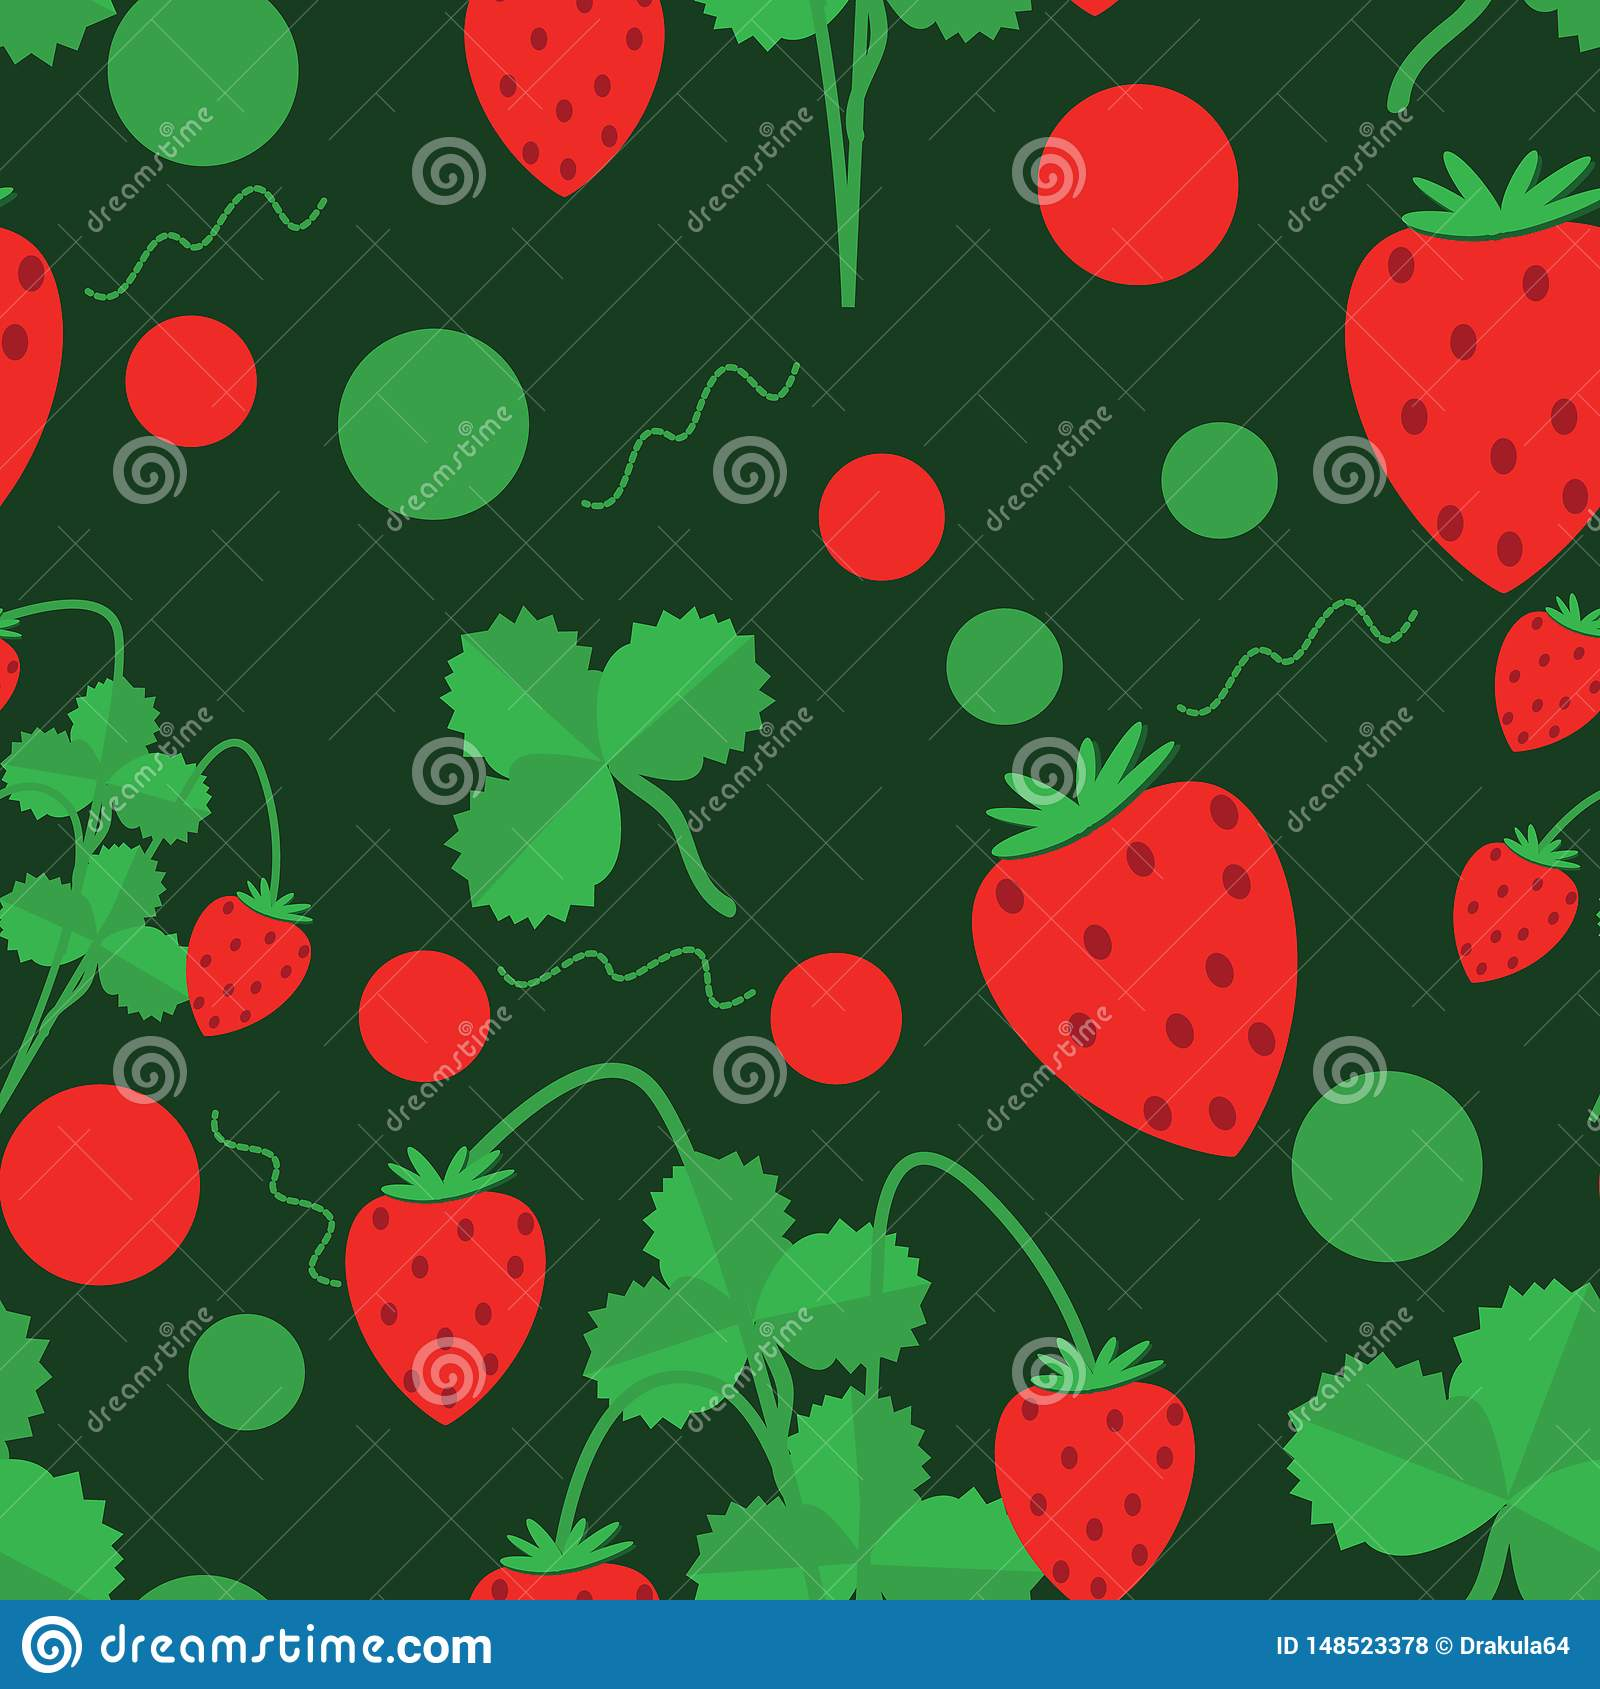 Seamless pattern of green leaves and strawberries